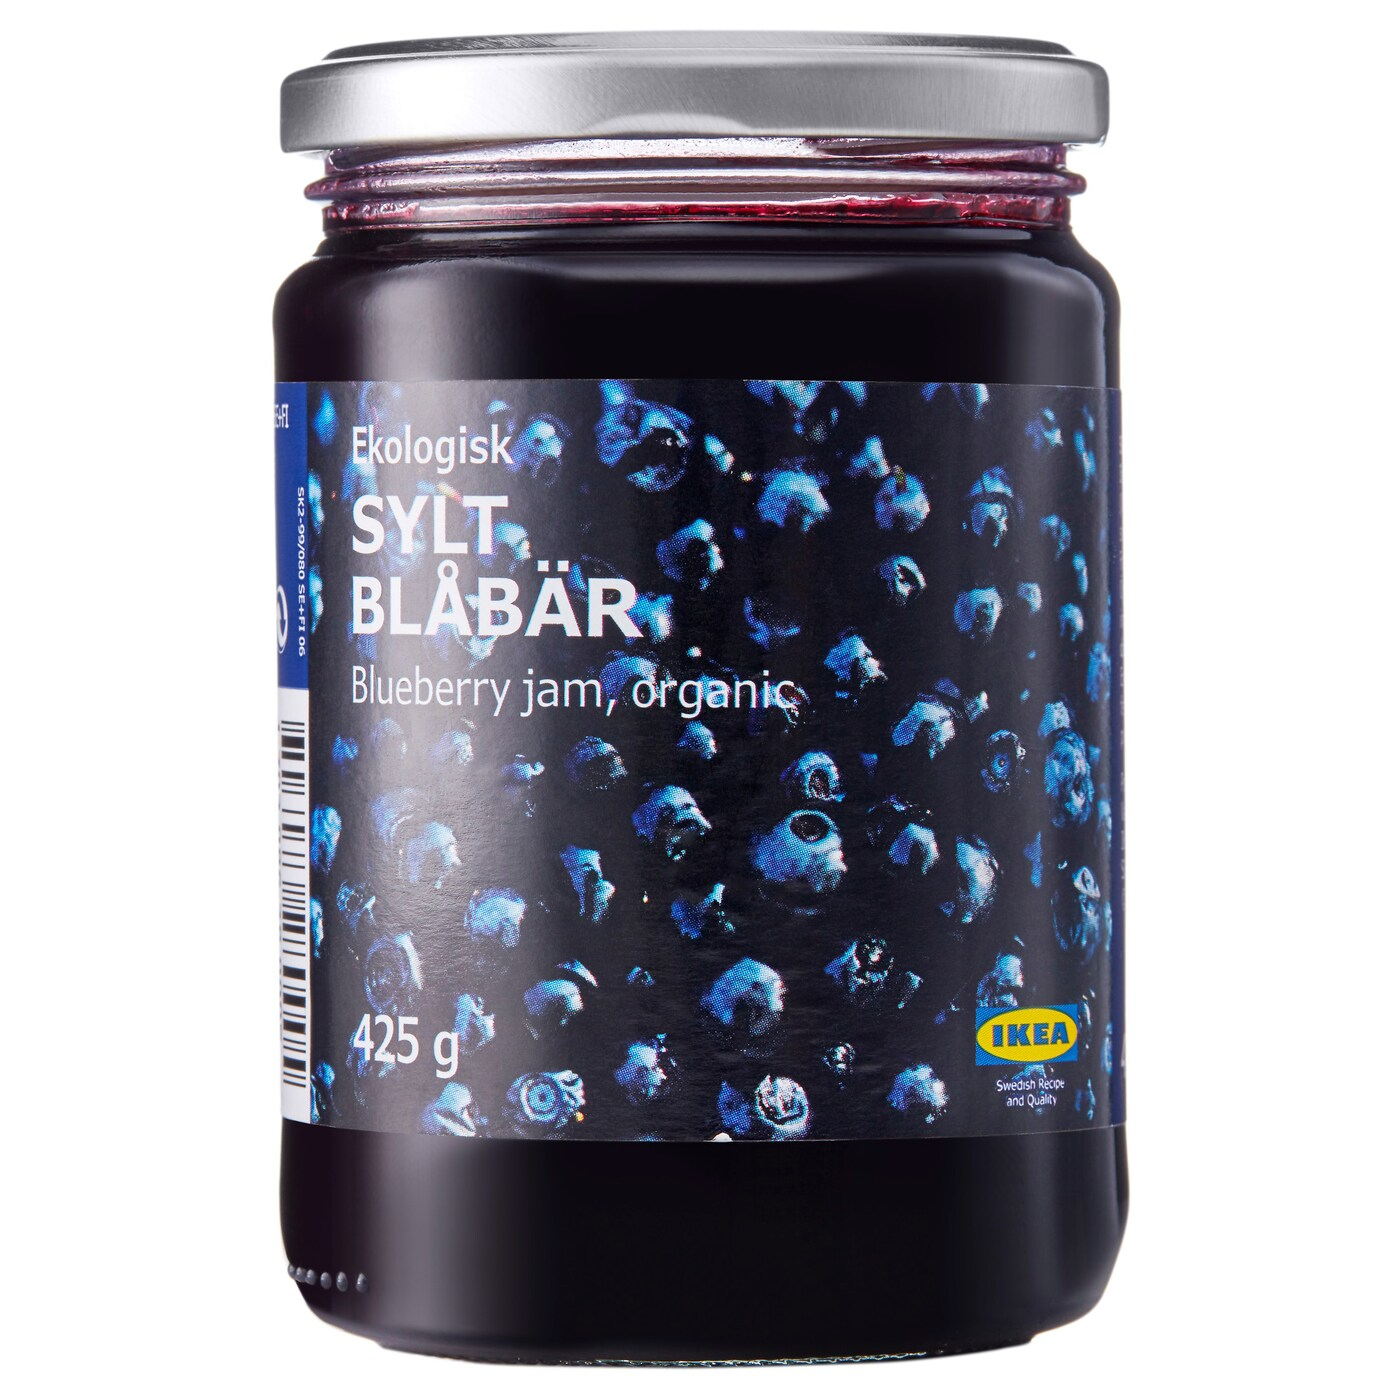 Calories in IKEA Blueberry jam